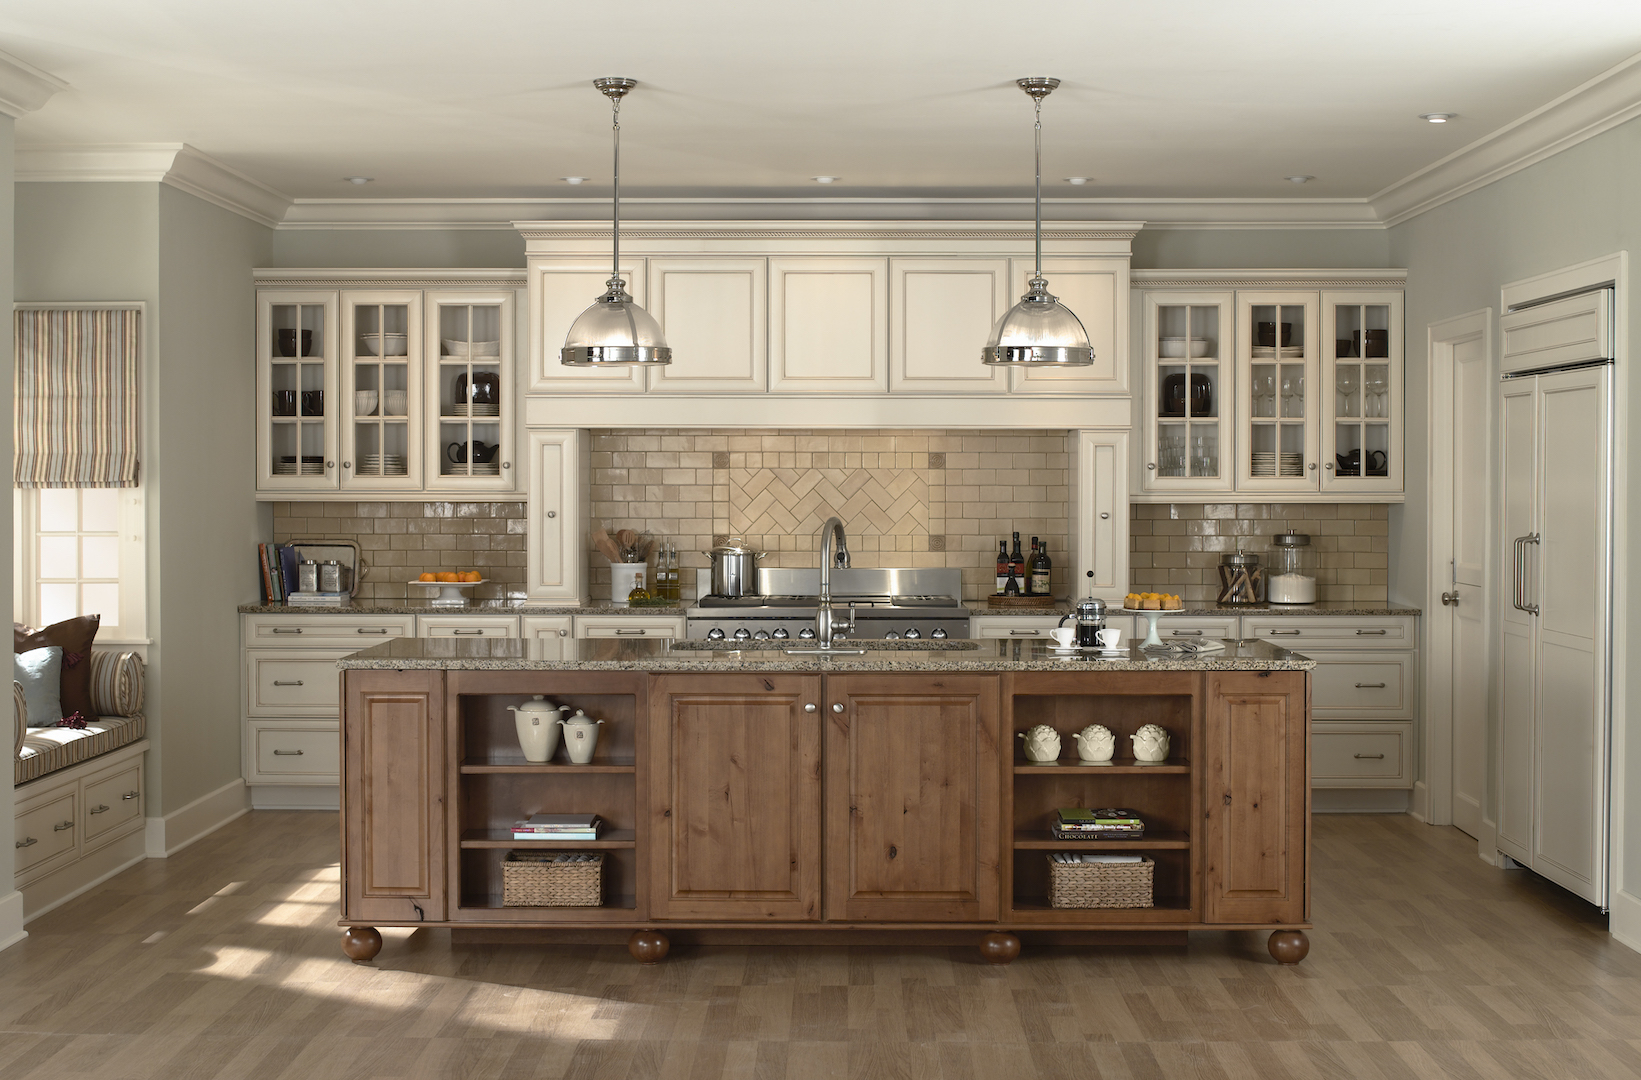 Kitchen Cabinets 101: Finishes - Tampa Flooring Company